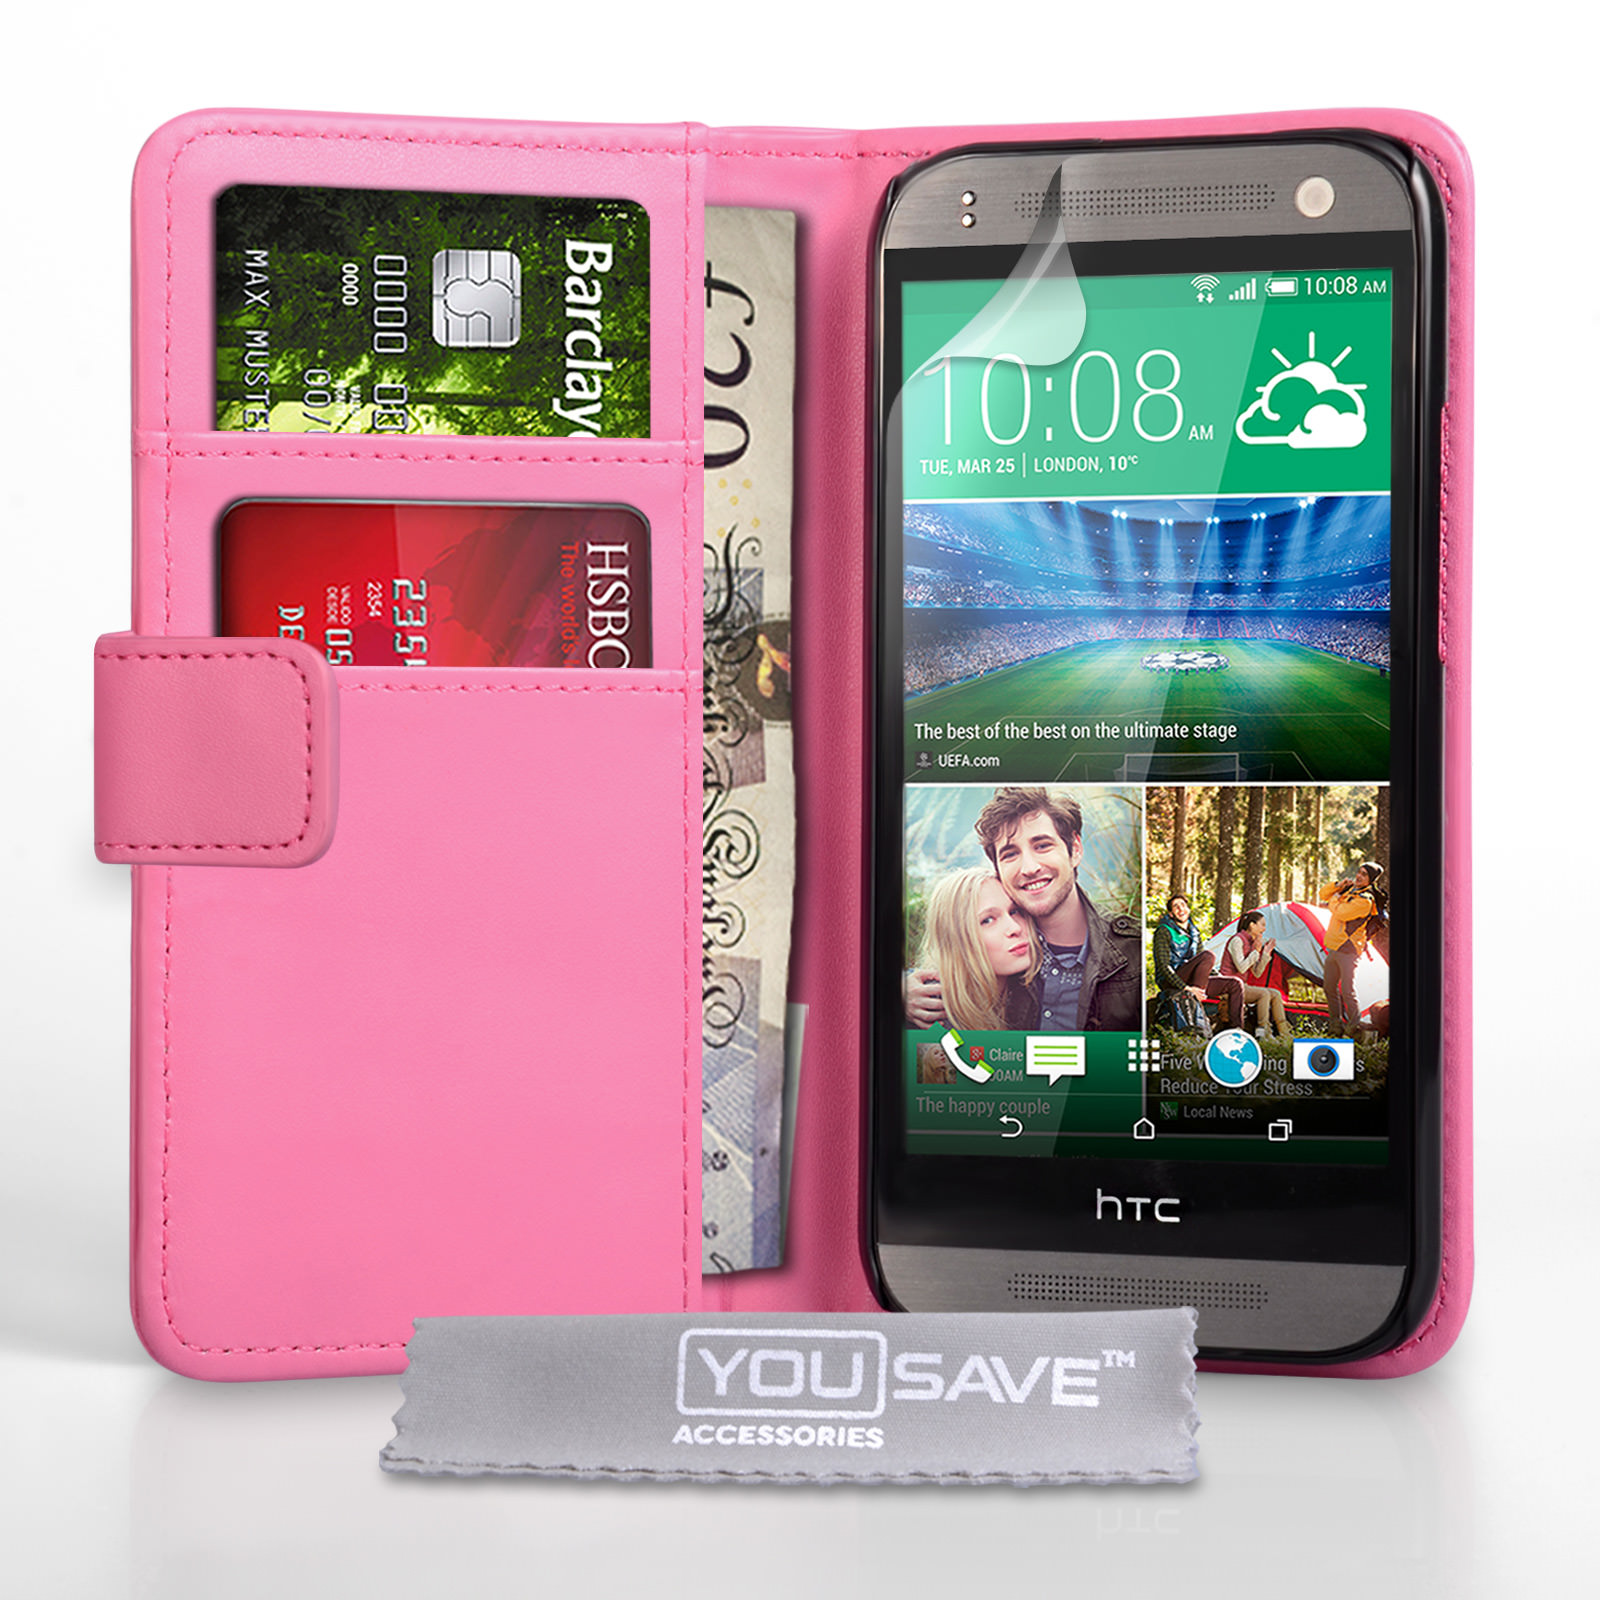 YouSave HTC One Mini 2 Leather-Effect Wallet Case - Hot Pink